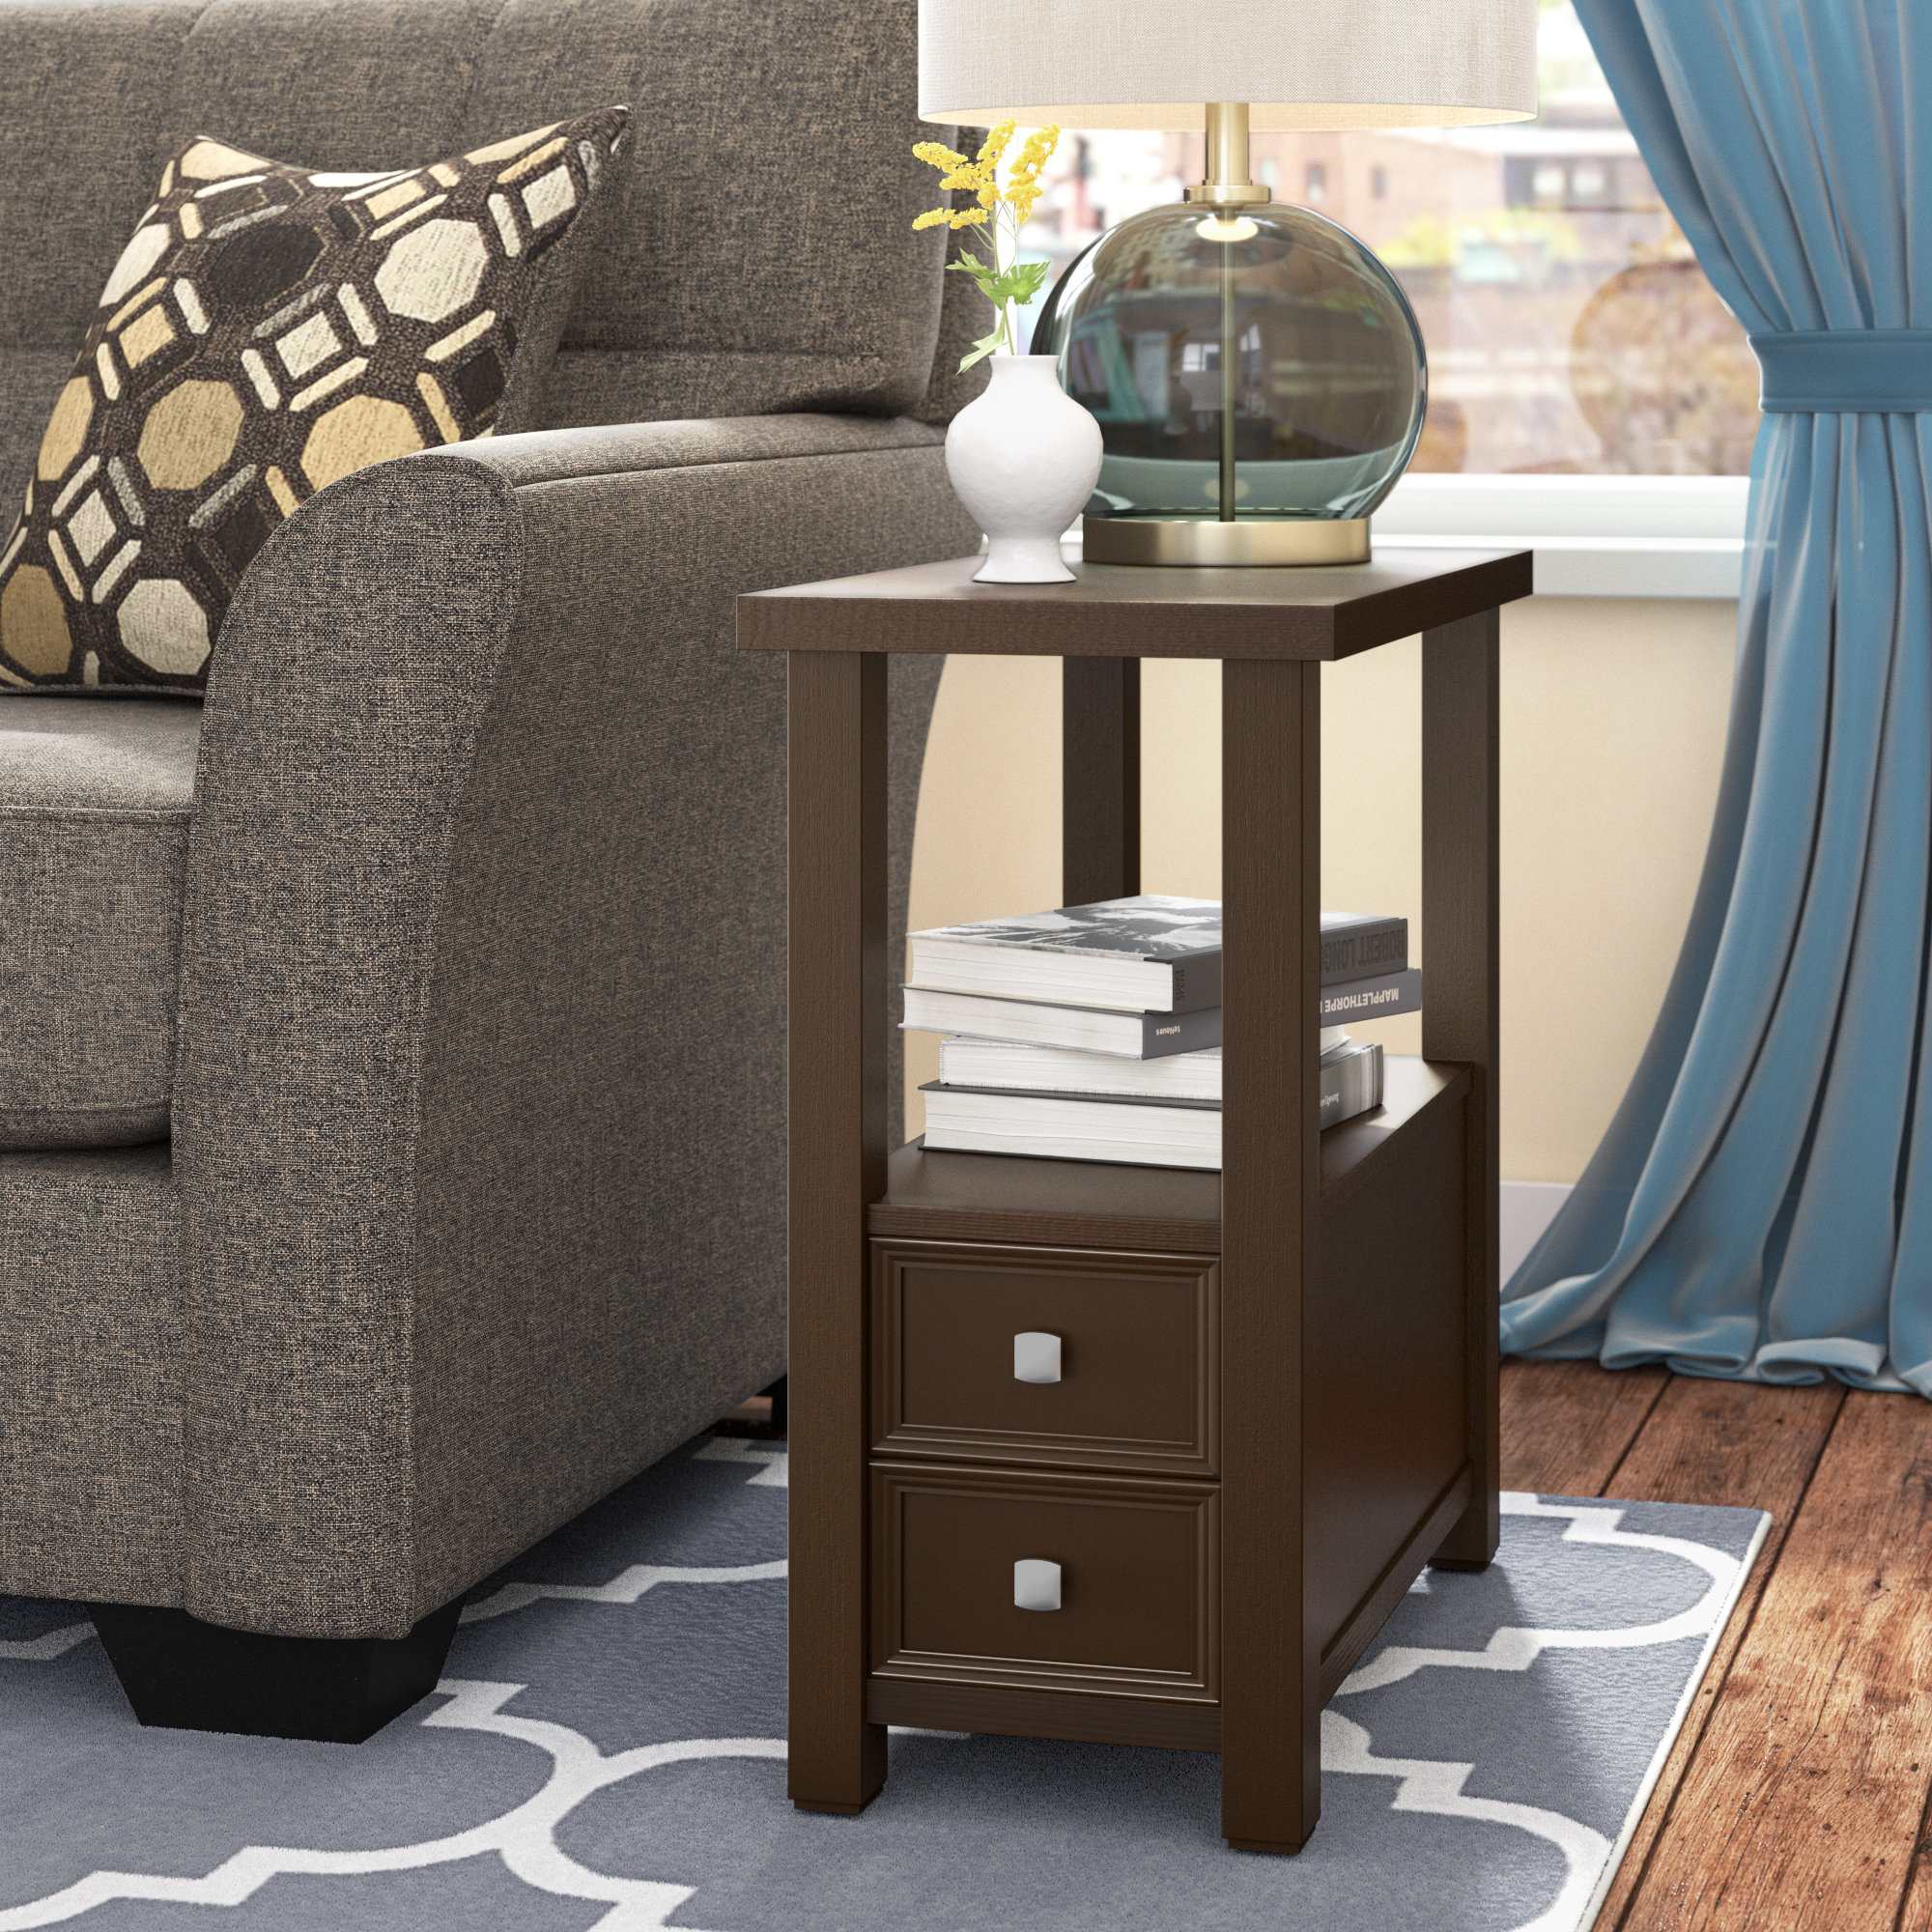 small end tables you love casares table patchen accent desk ashley furniture mattress round vinyl tablecloth side cabinet ikea garden home decor mirrors turquoise chair dorm room